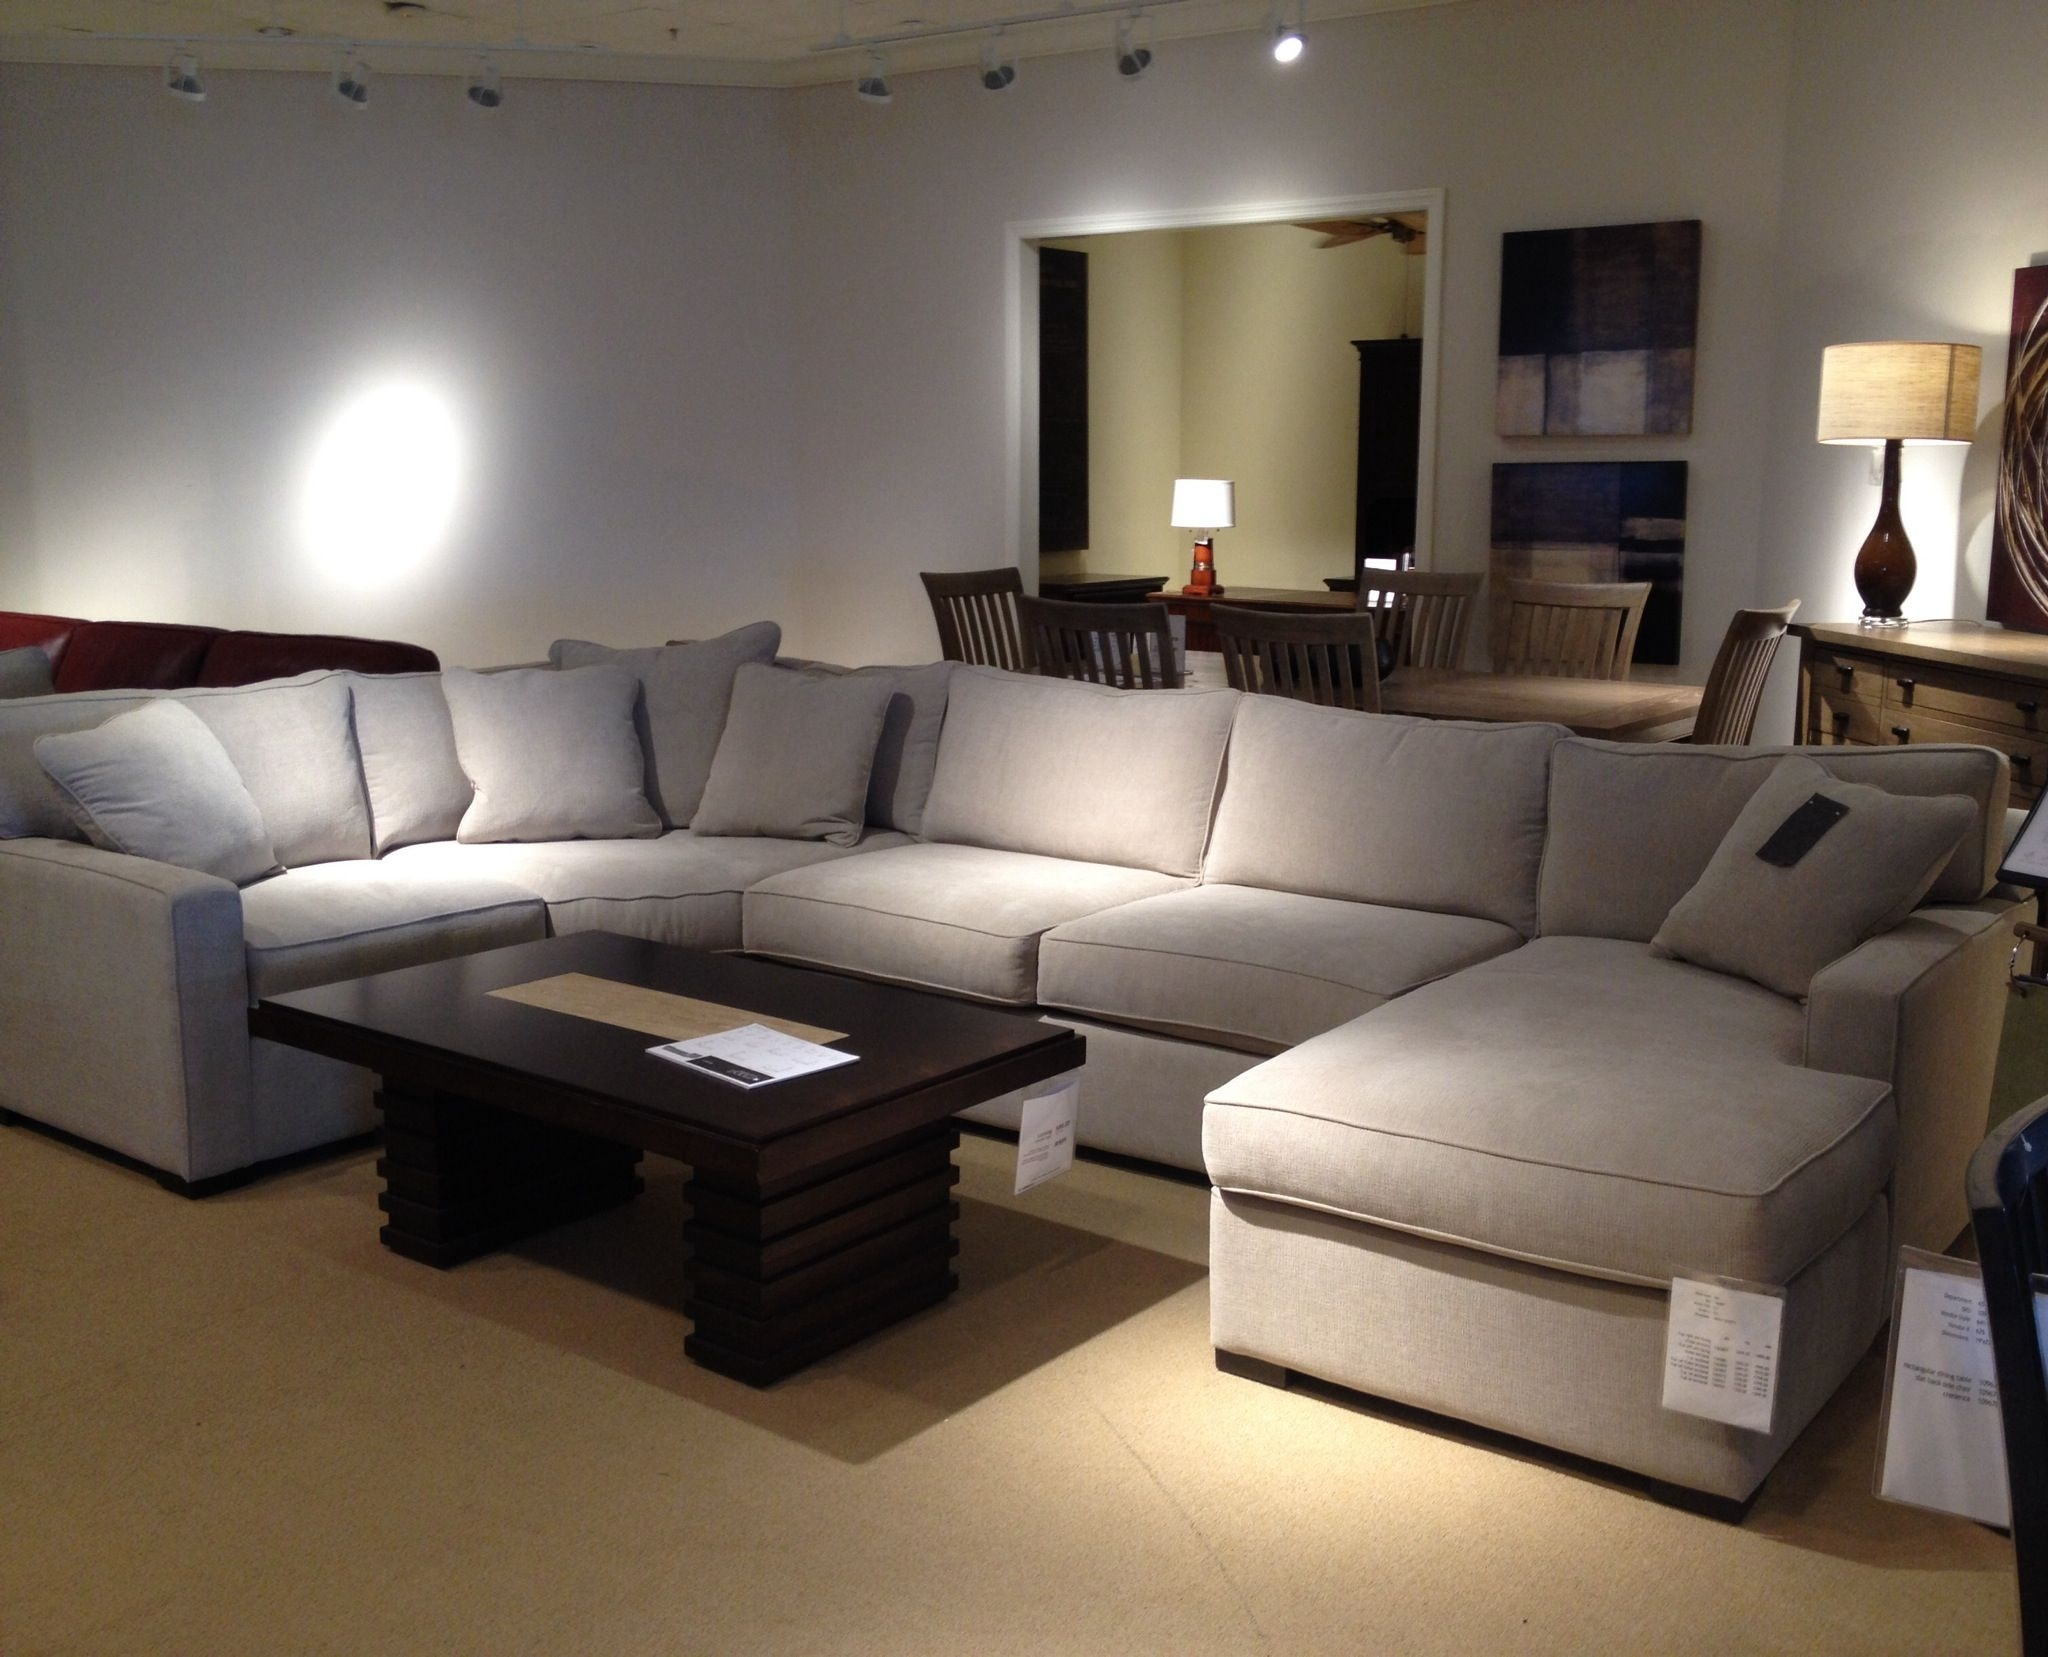 Radley 4 Piece Sectional Sofa From Macys (View 18 of 25)